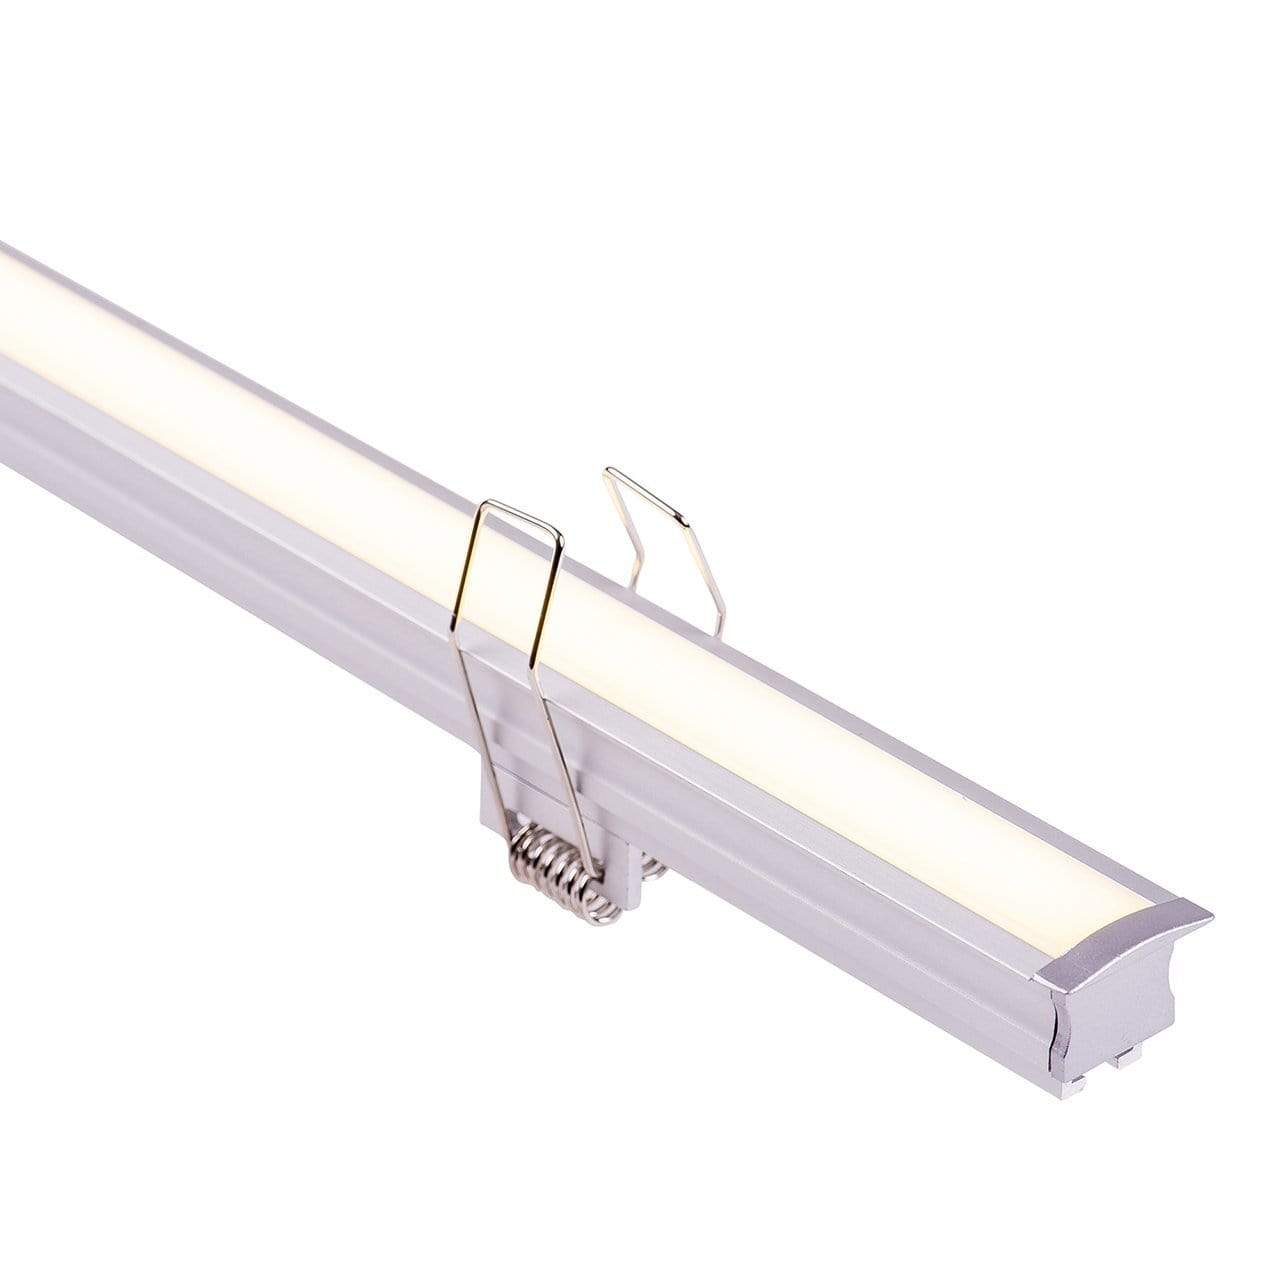 Profiles Recessed Profile - Deep Winged Spring Clips - HV9695-2520 lighting shops lighting stores LED lights  lighting designer